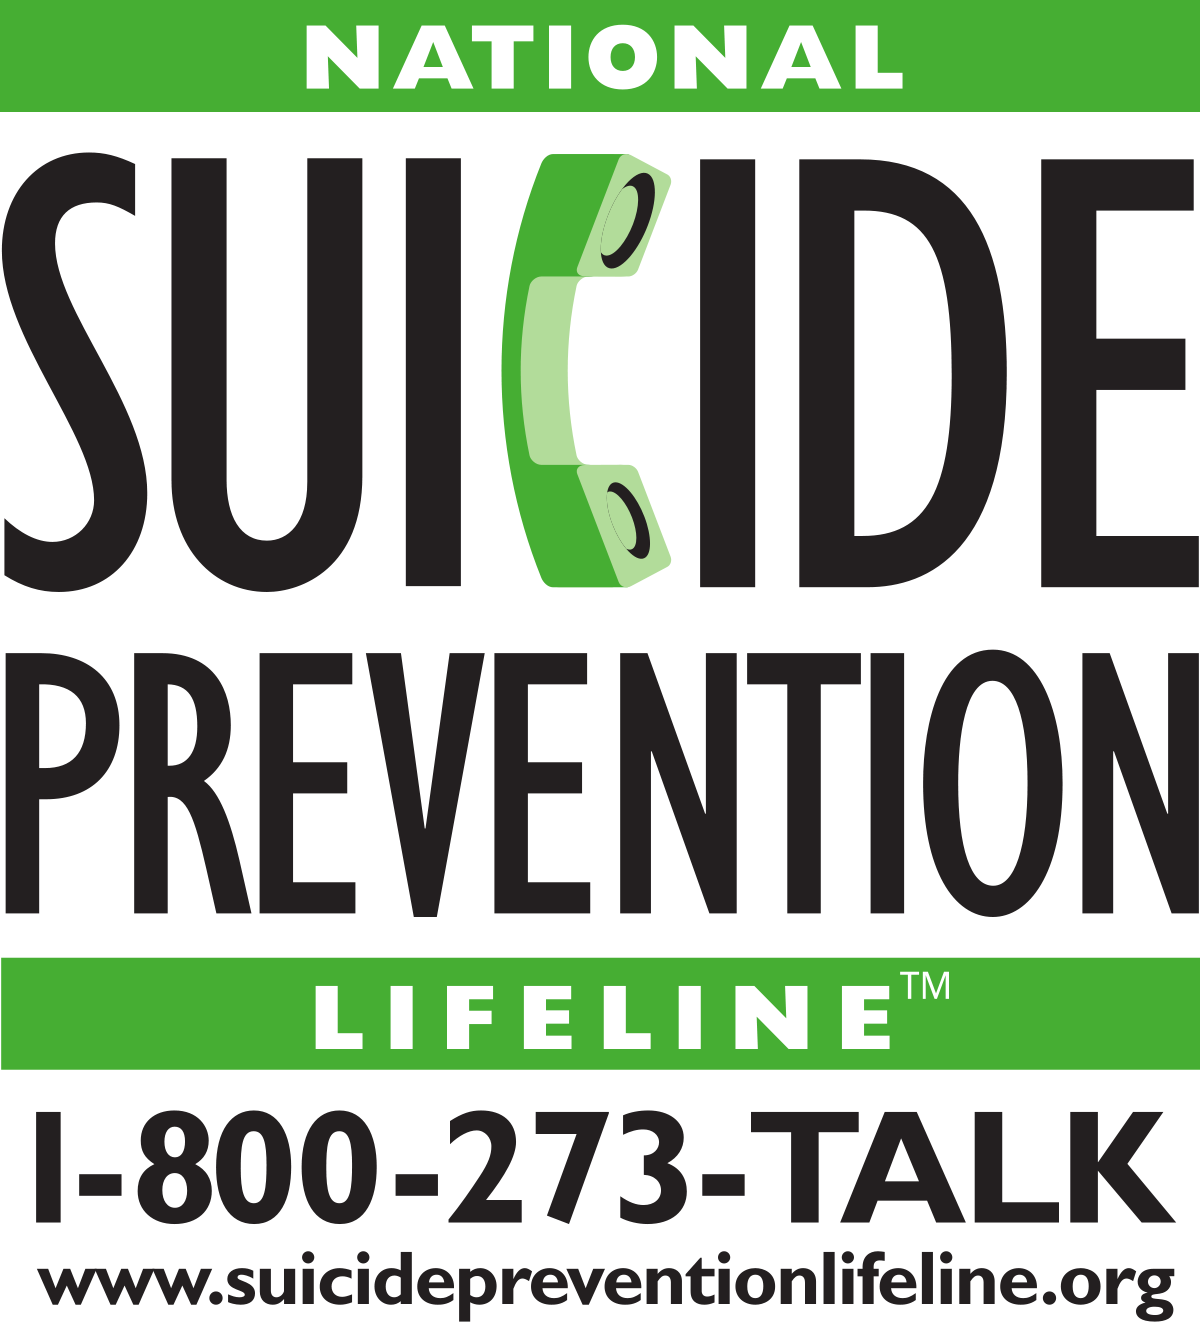 Dealing With The Suicidal Officer